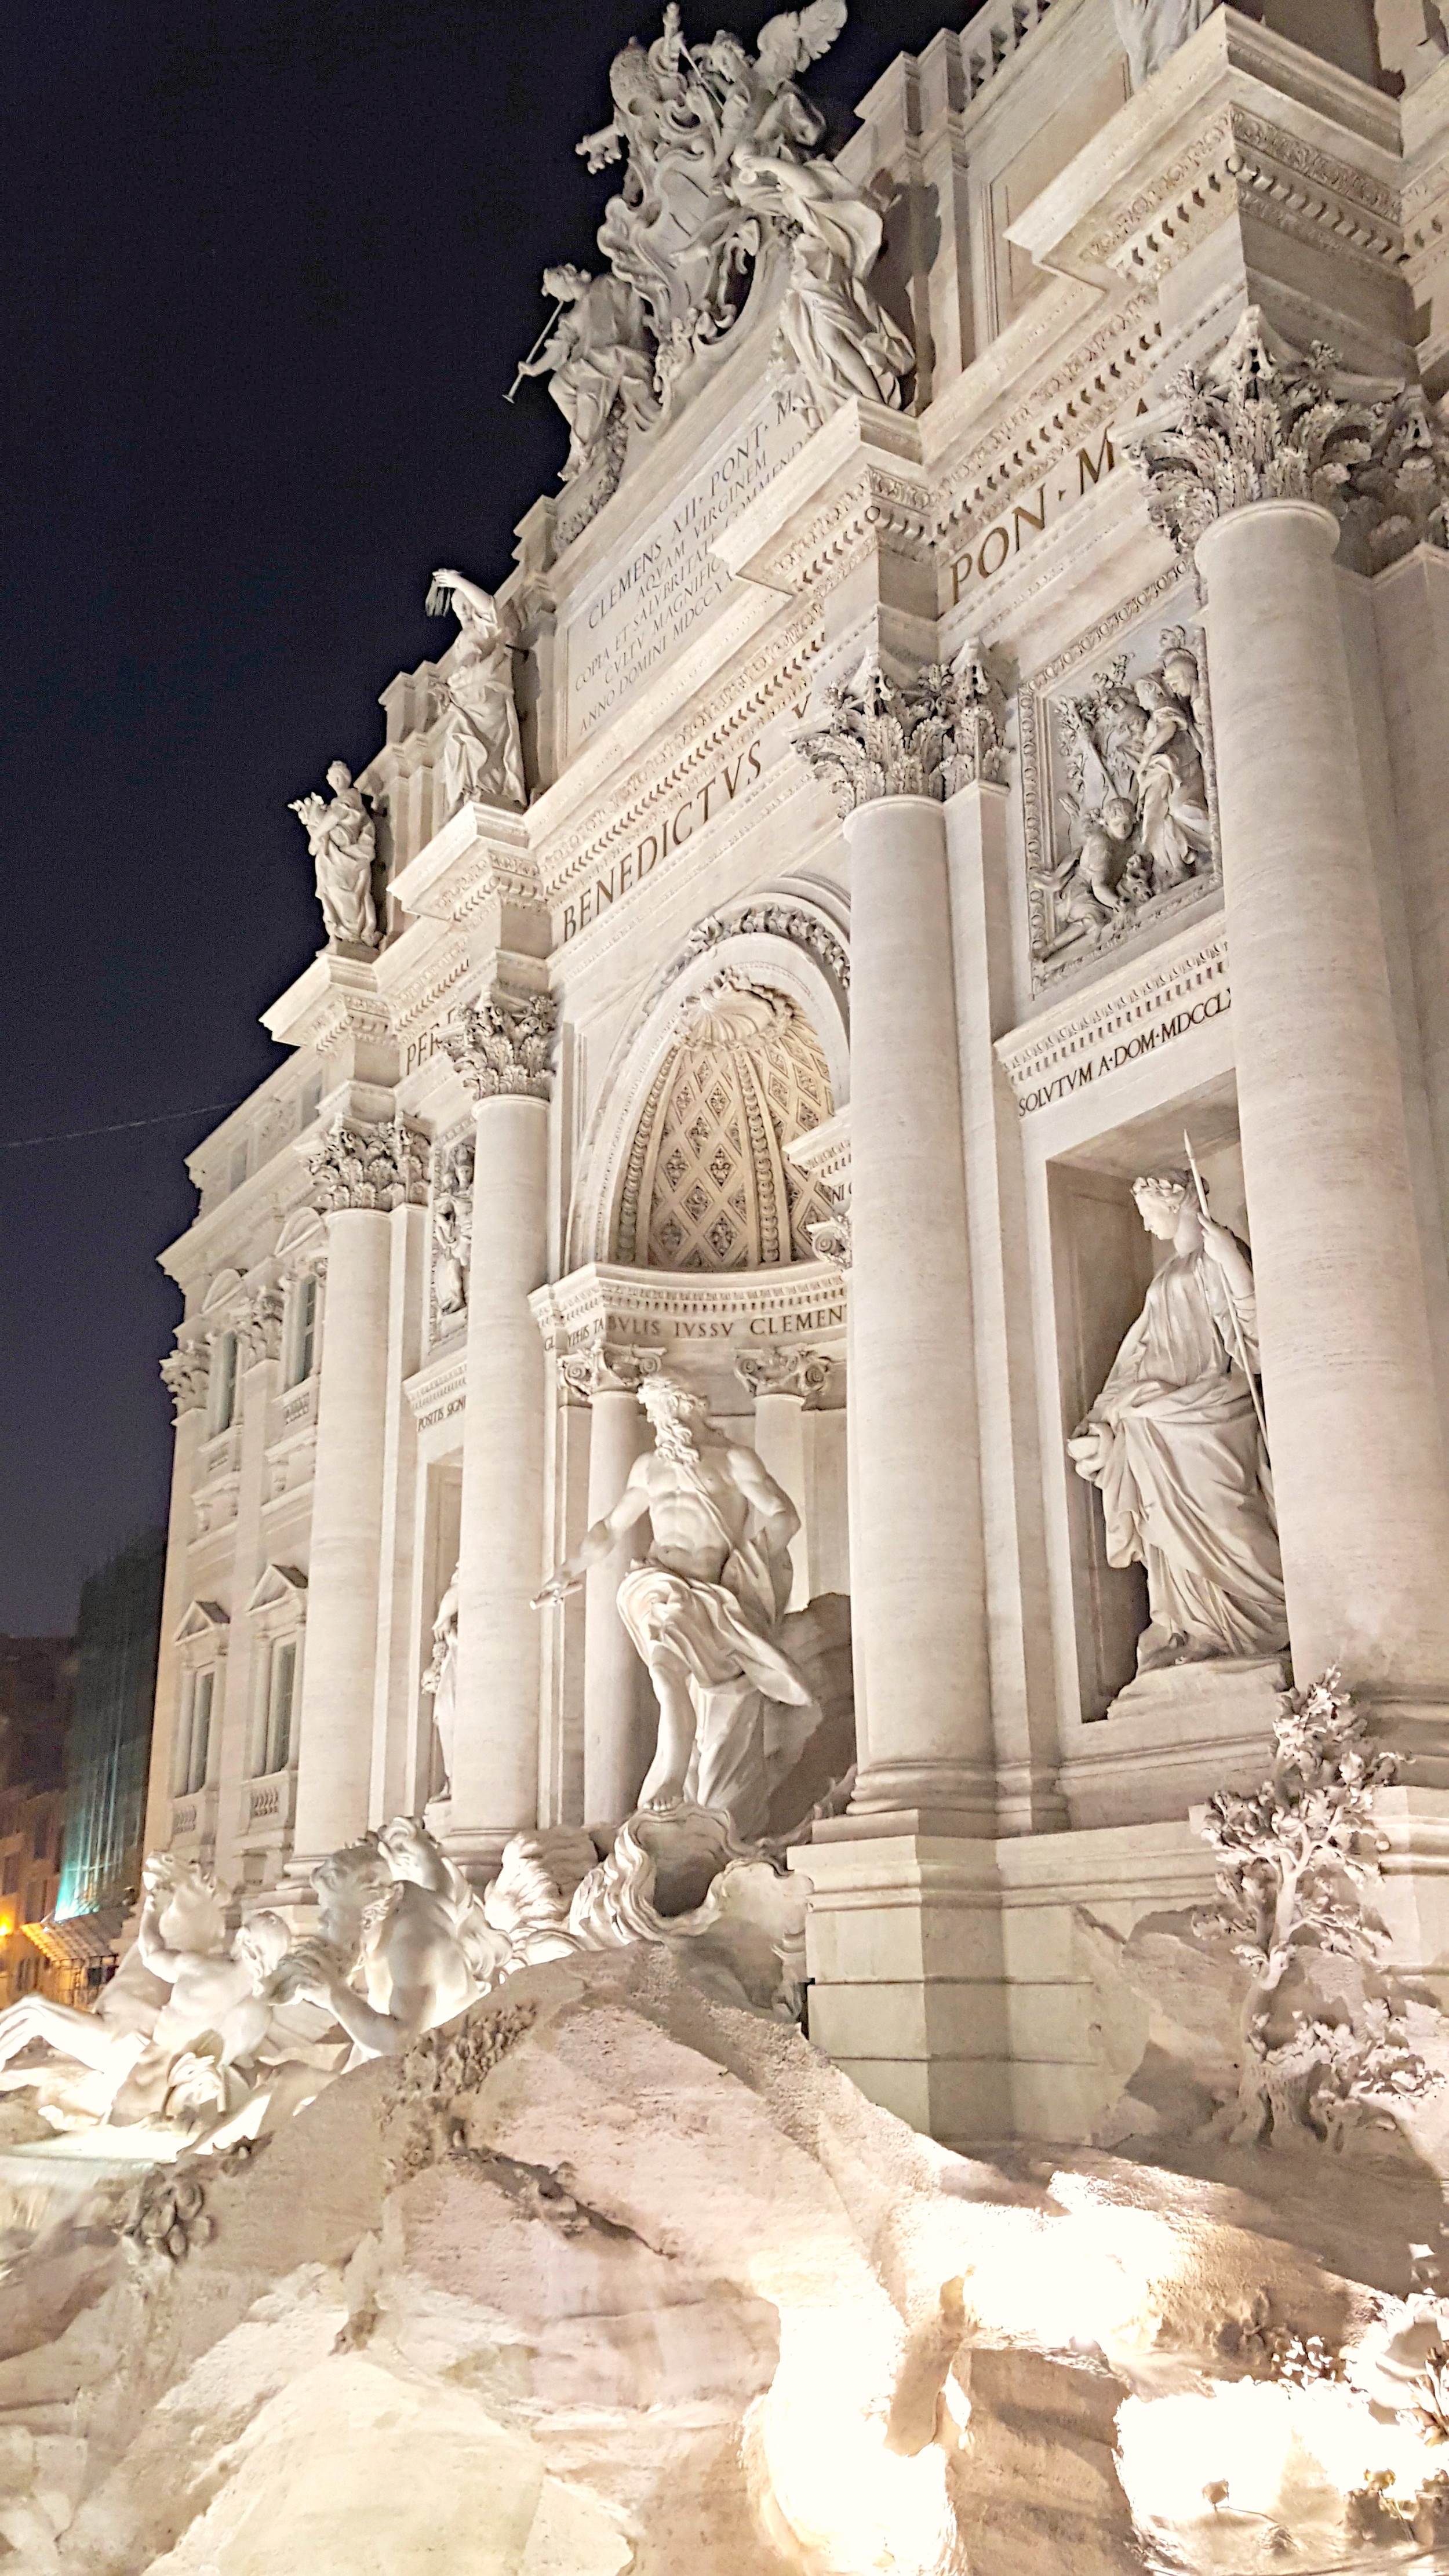 The freshly cleaned white marble Trevi Fountain enchanting hundreds